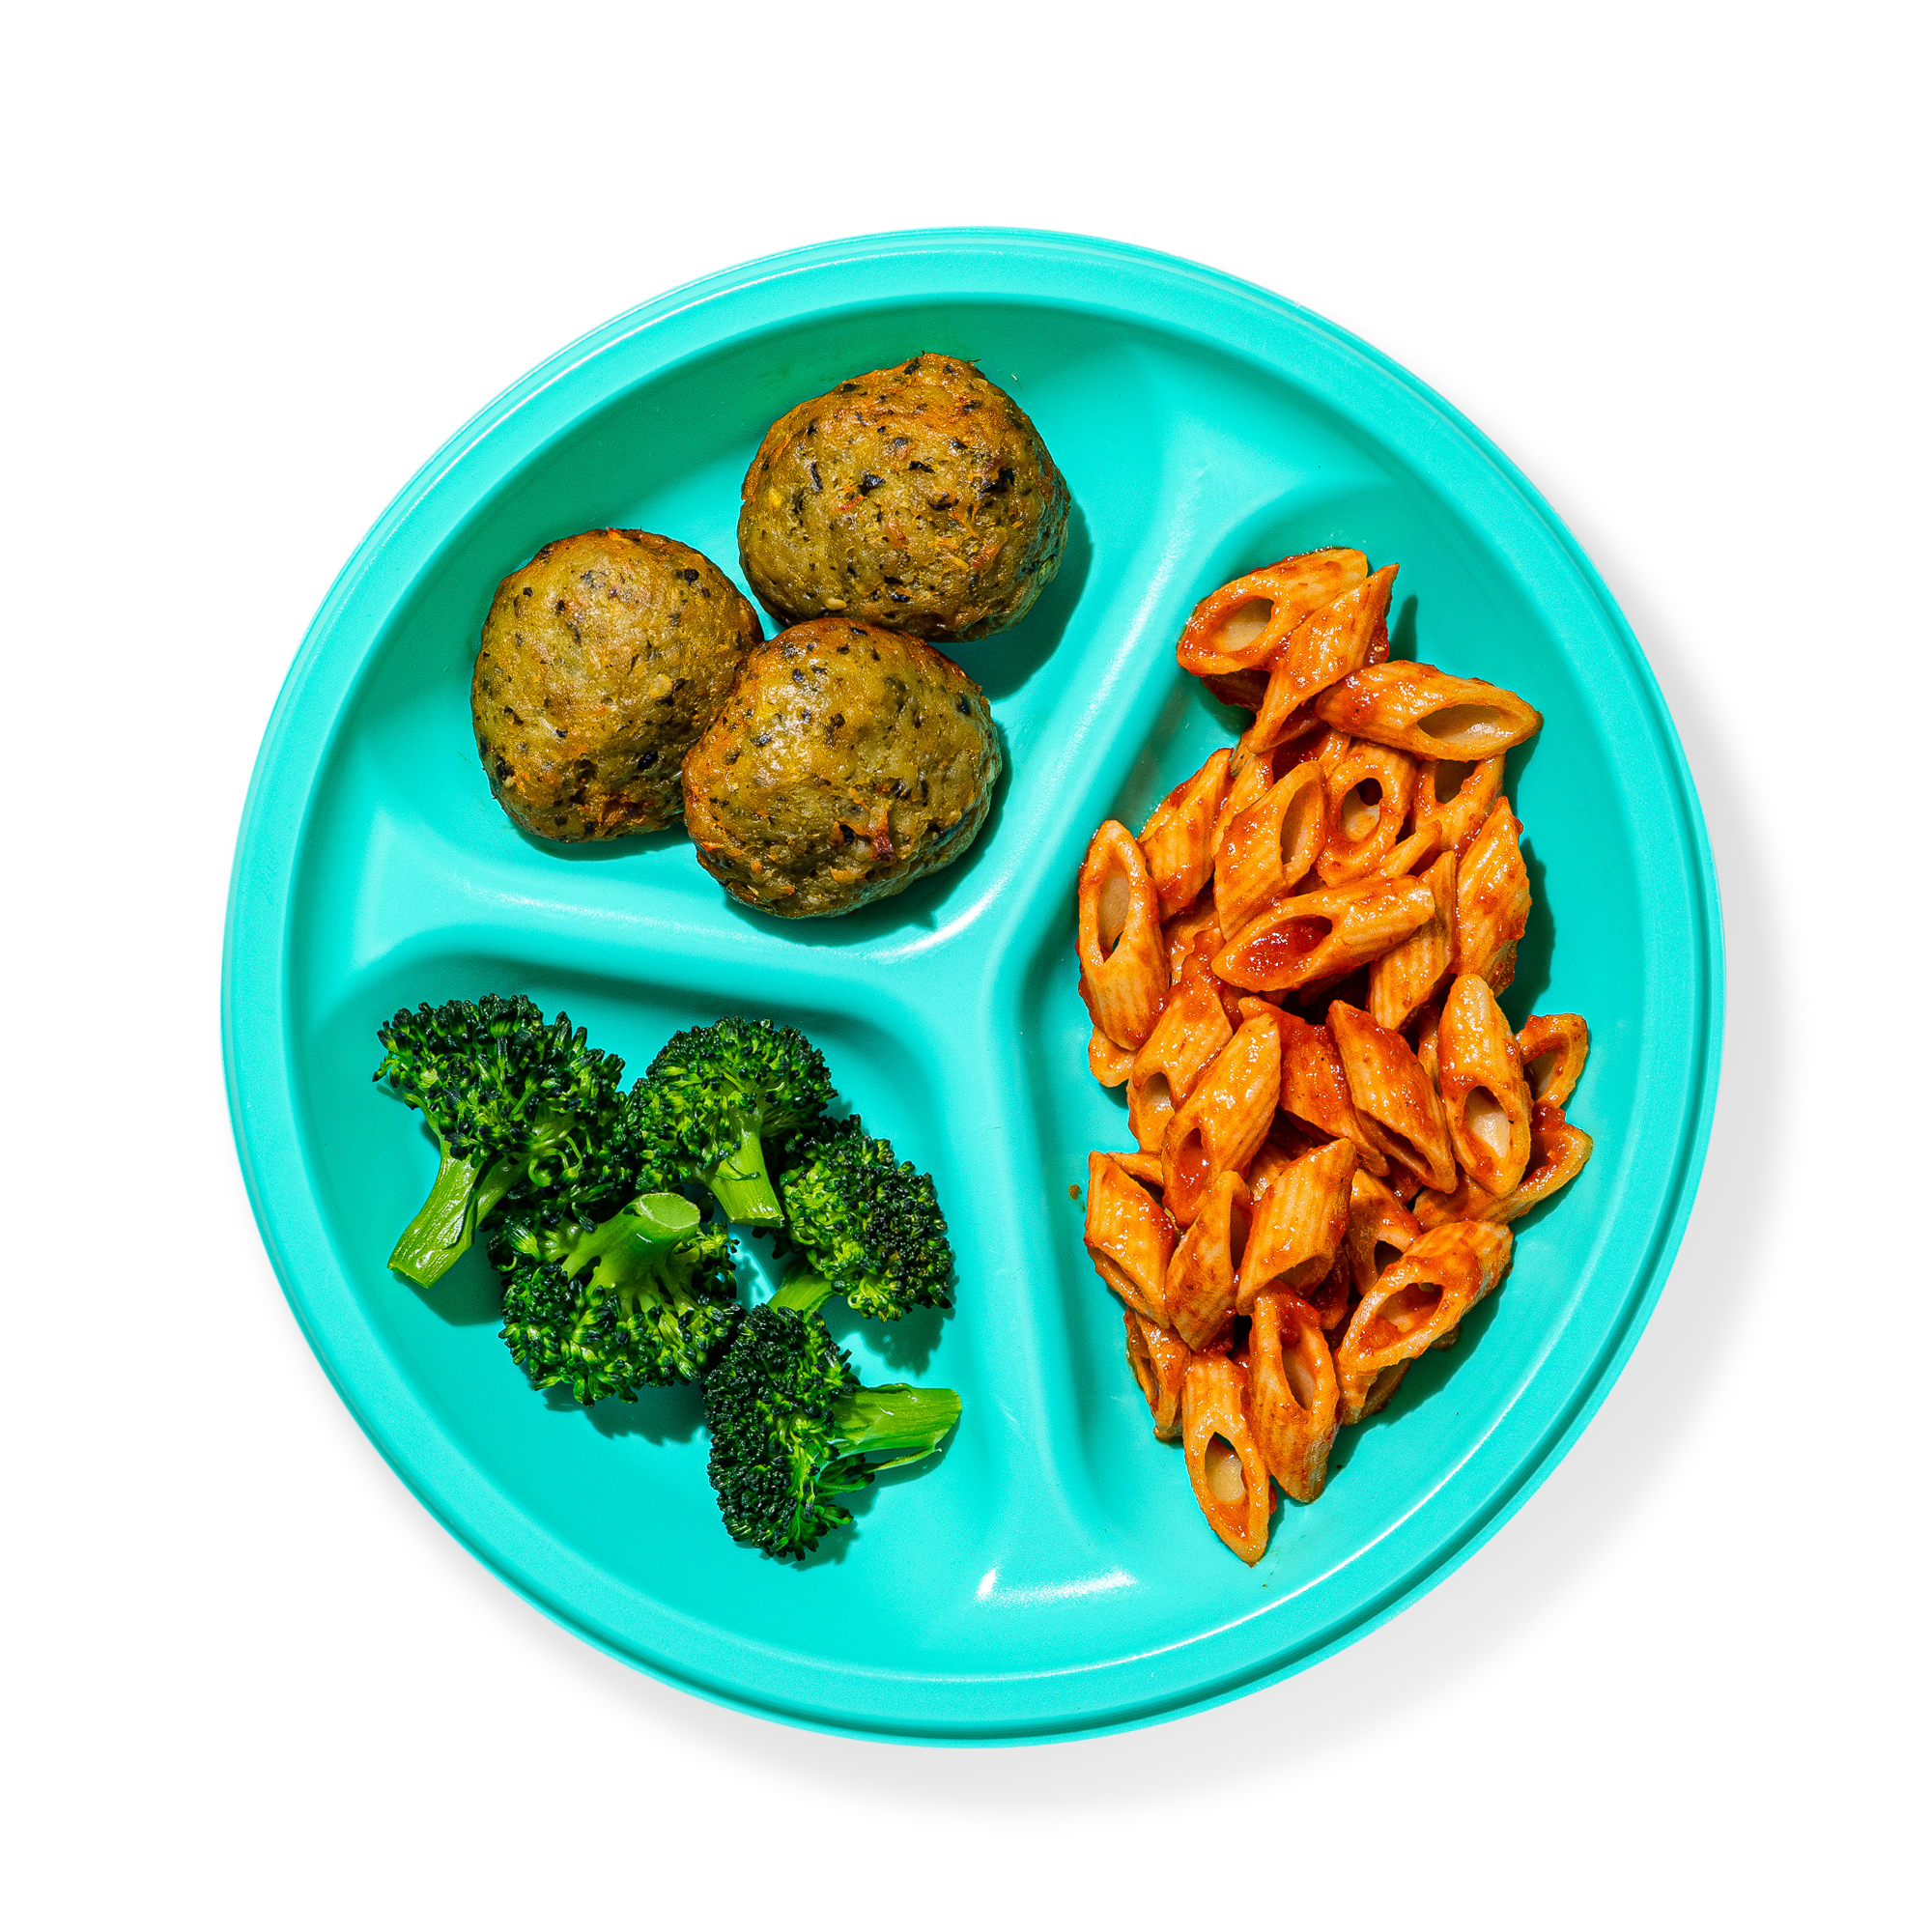 Plate of Penne and Kale Turkey Meatballs